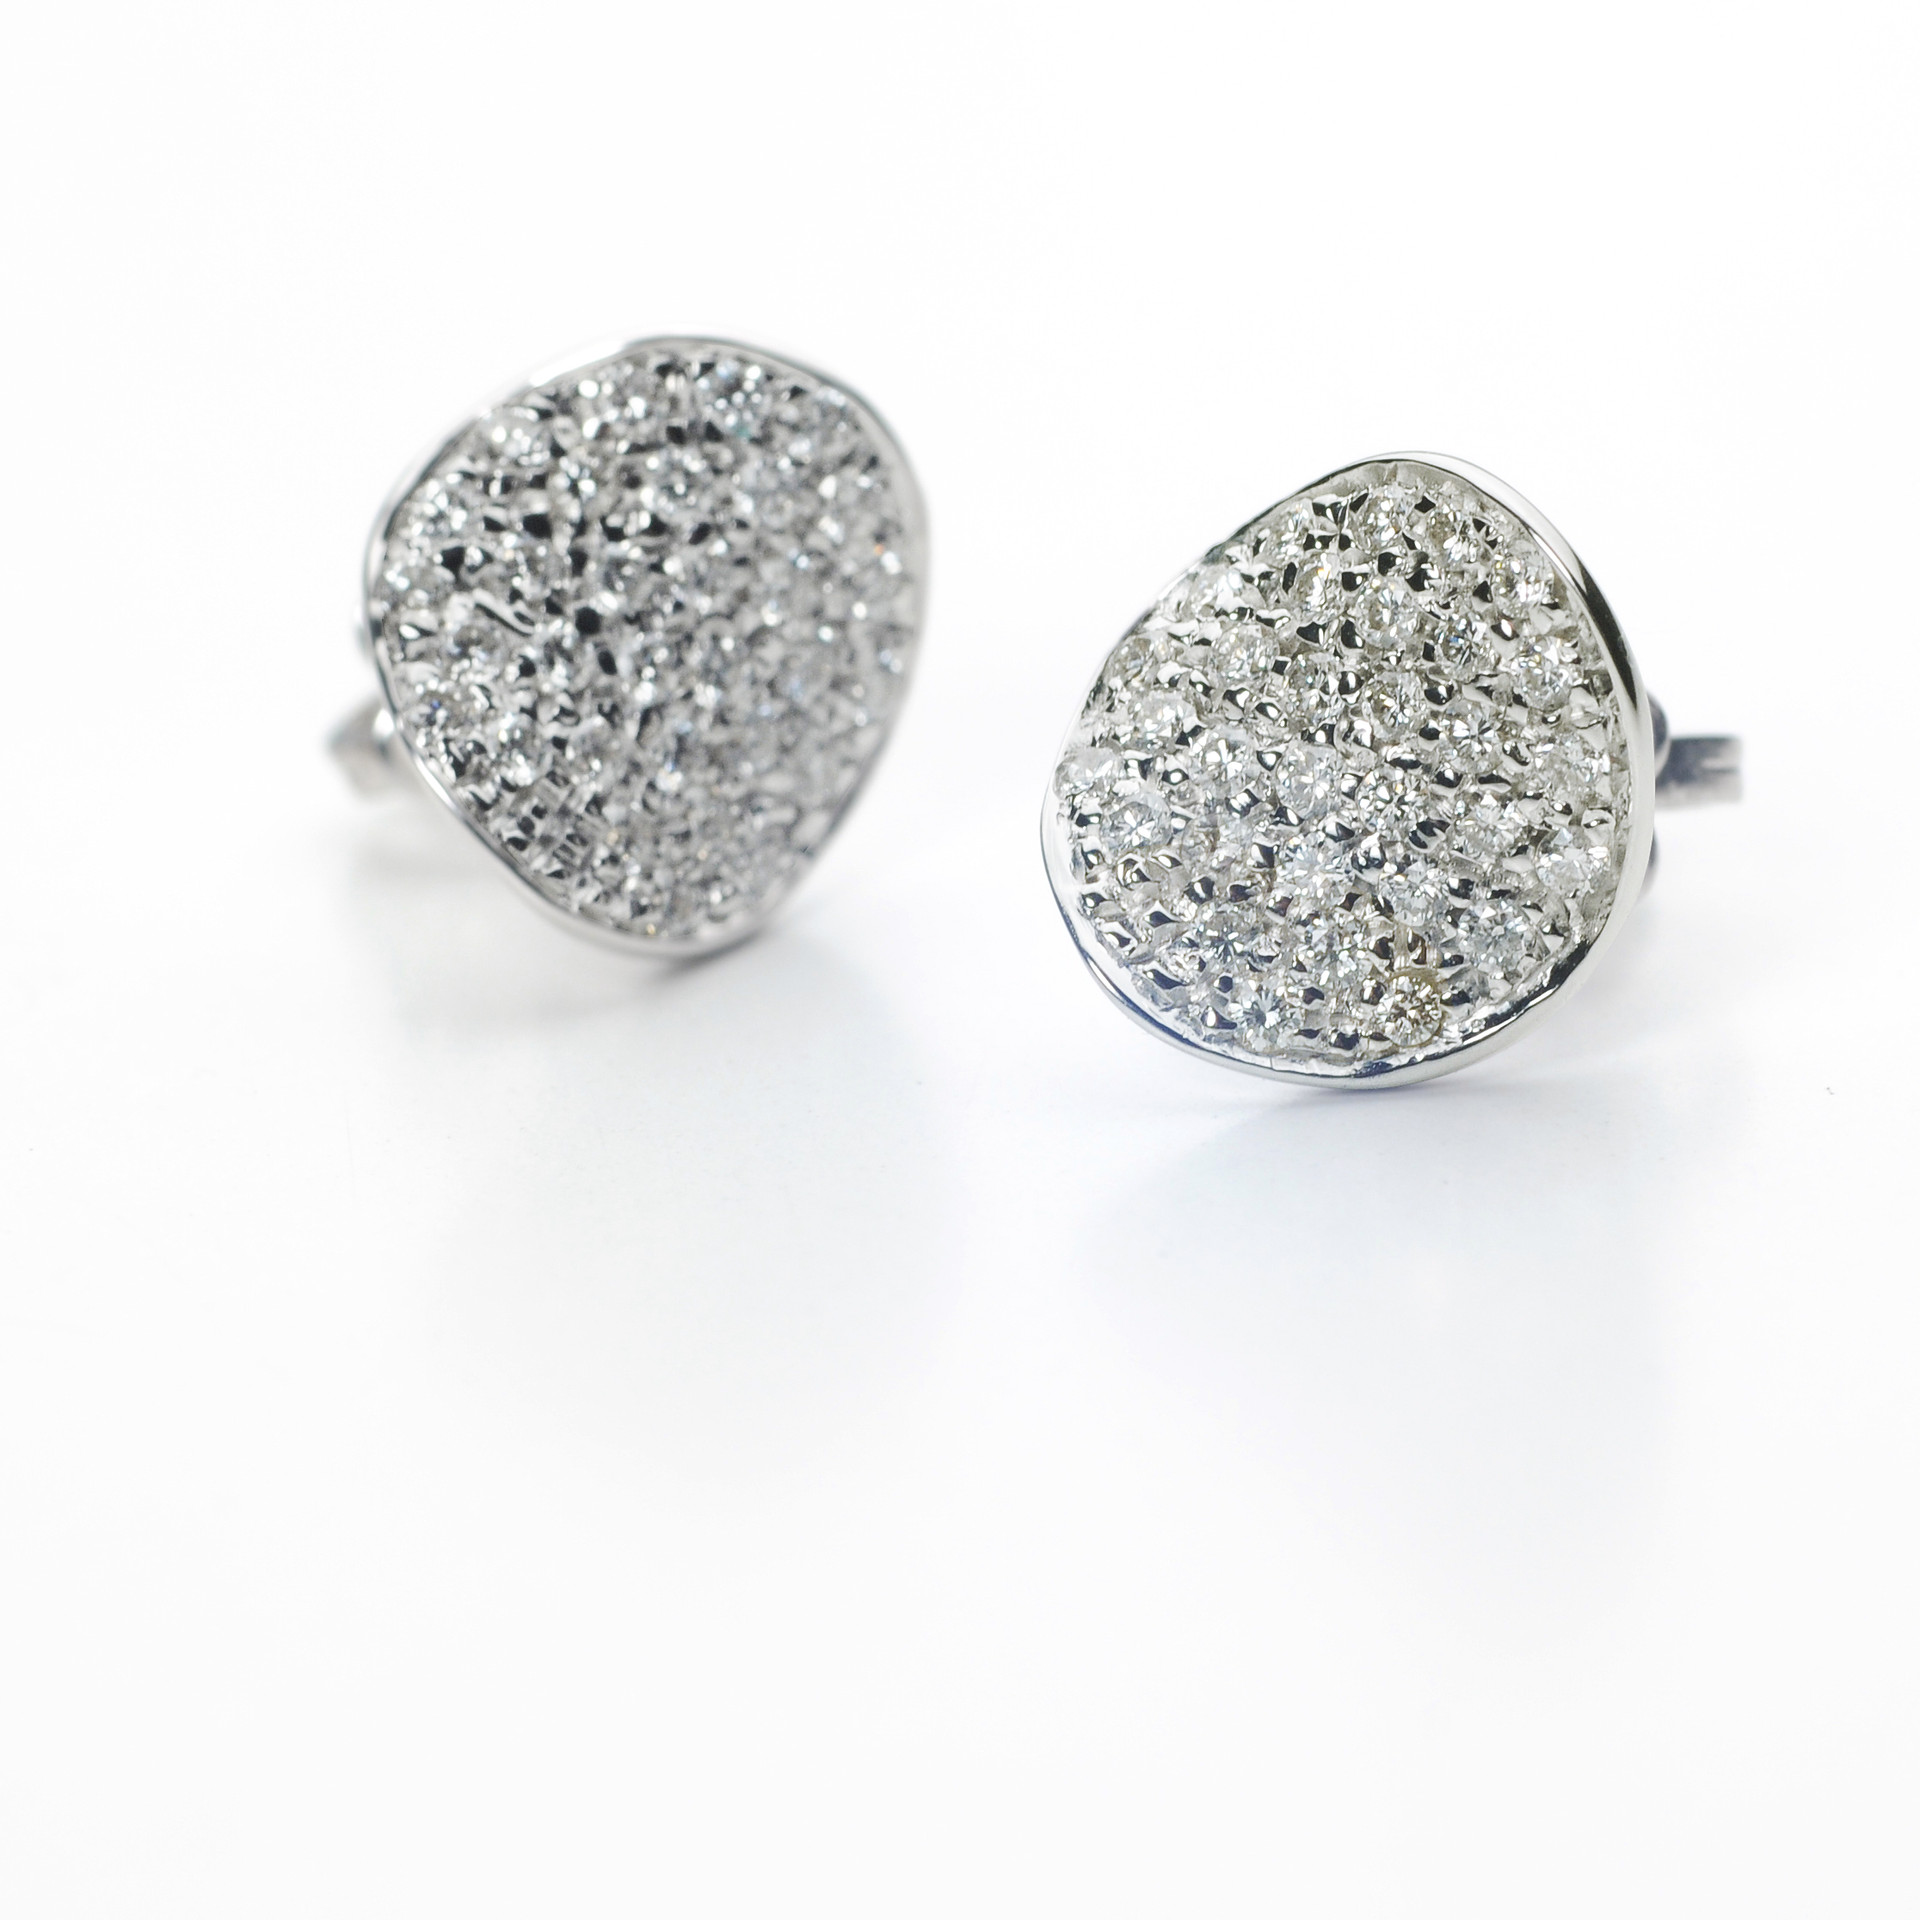 ORECCHINI A LOBO / STUD EARRINGS